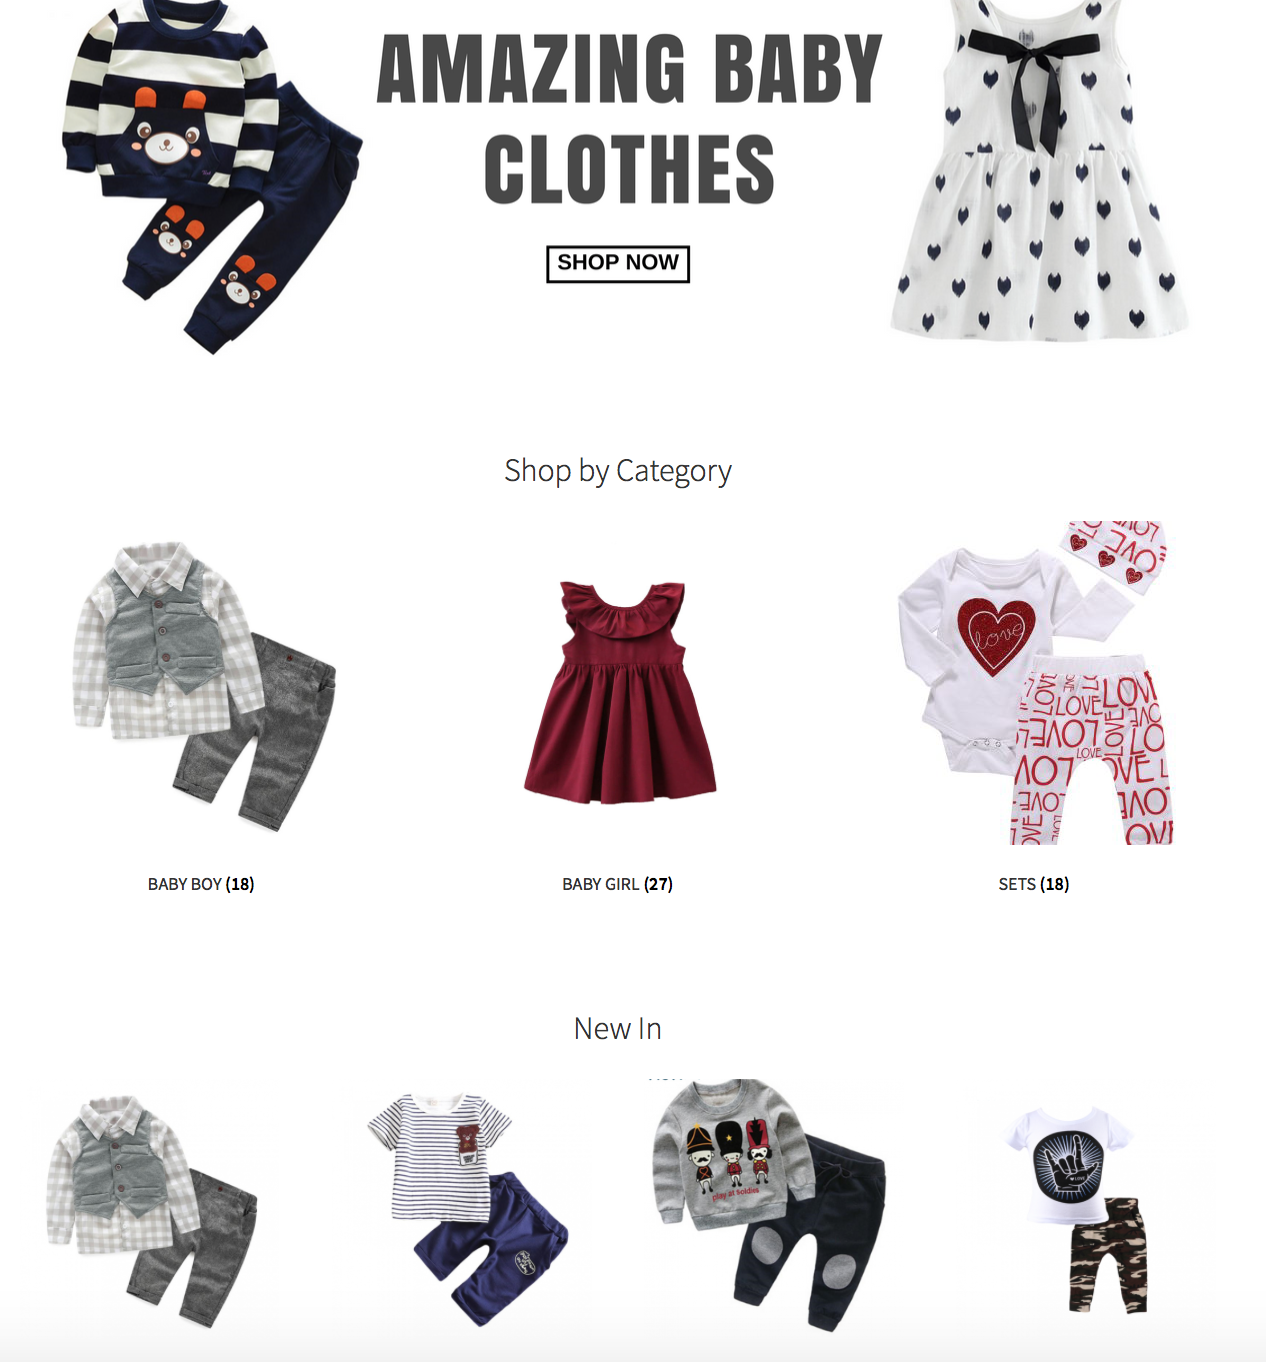 Baby Clothing Dropship Website Dropship Finds